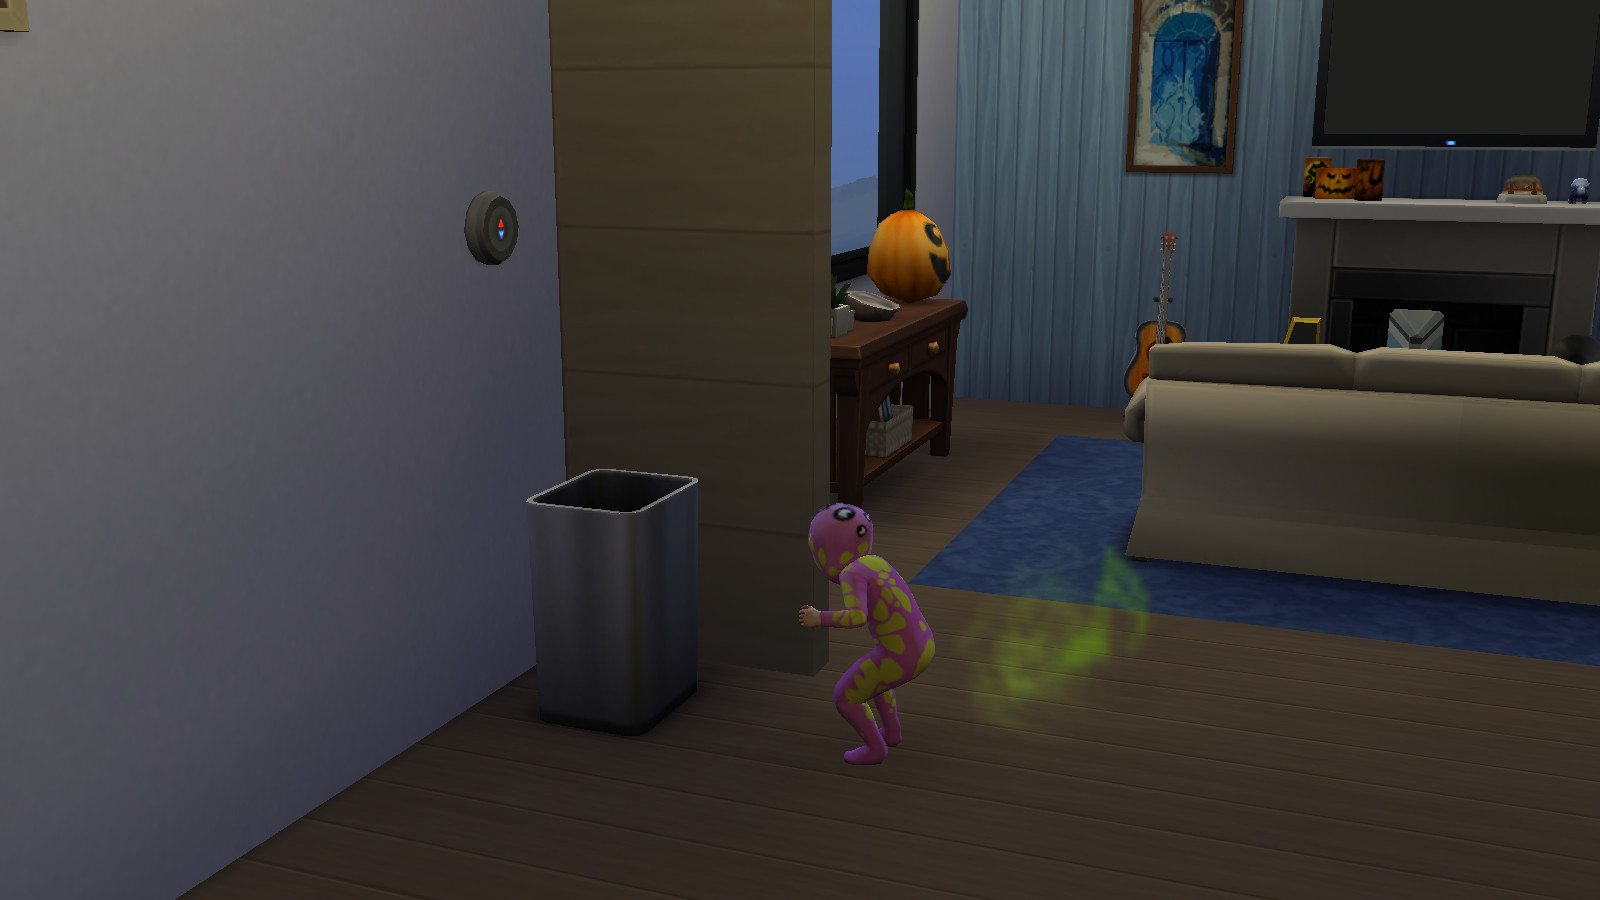 a toddler in the sims 4 about to push over a trash can while pooping in her diaper